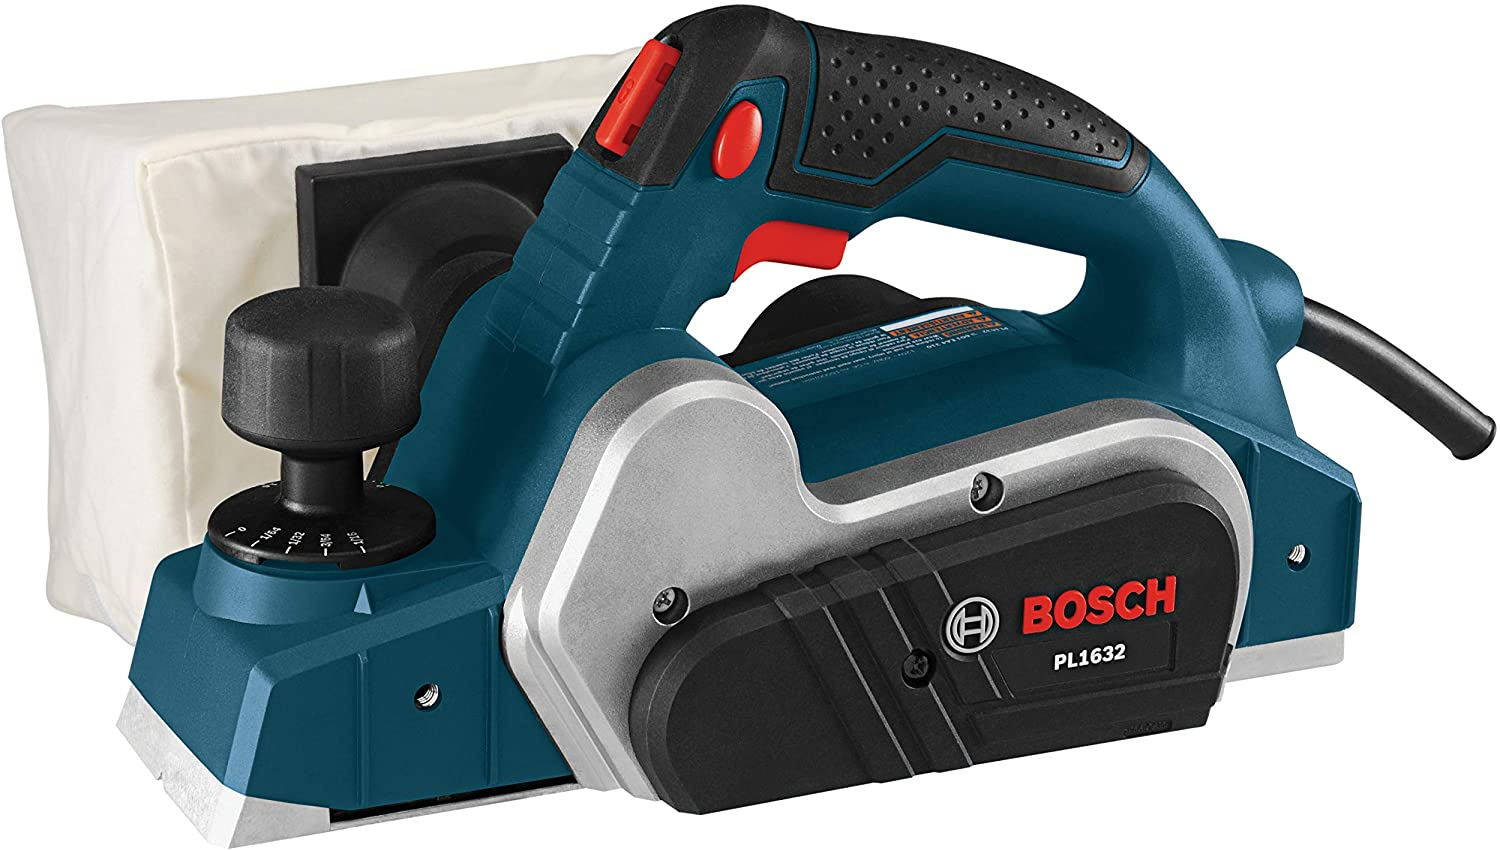 Bosch PL1632 featured image 6